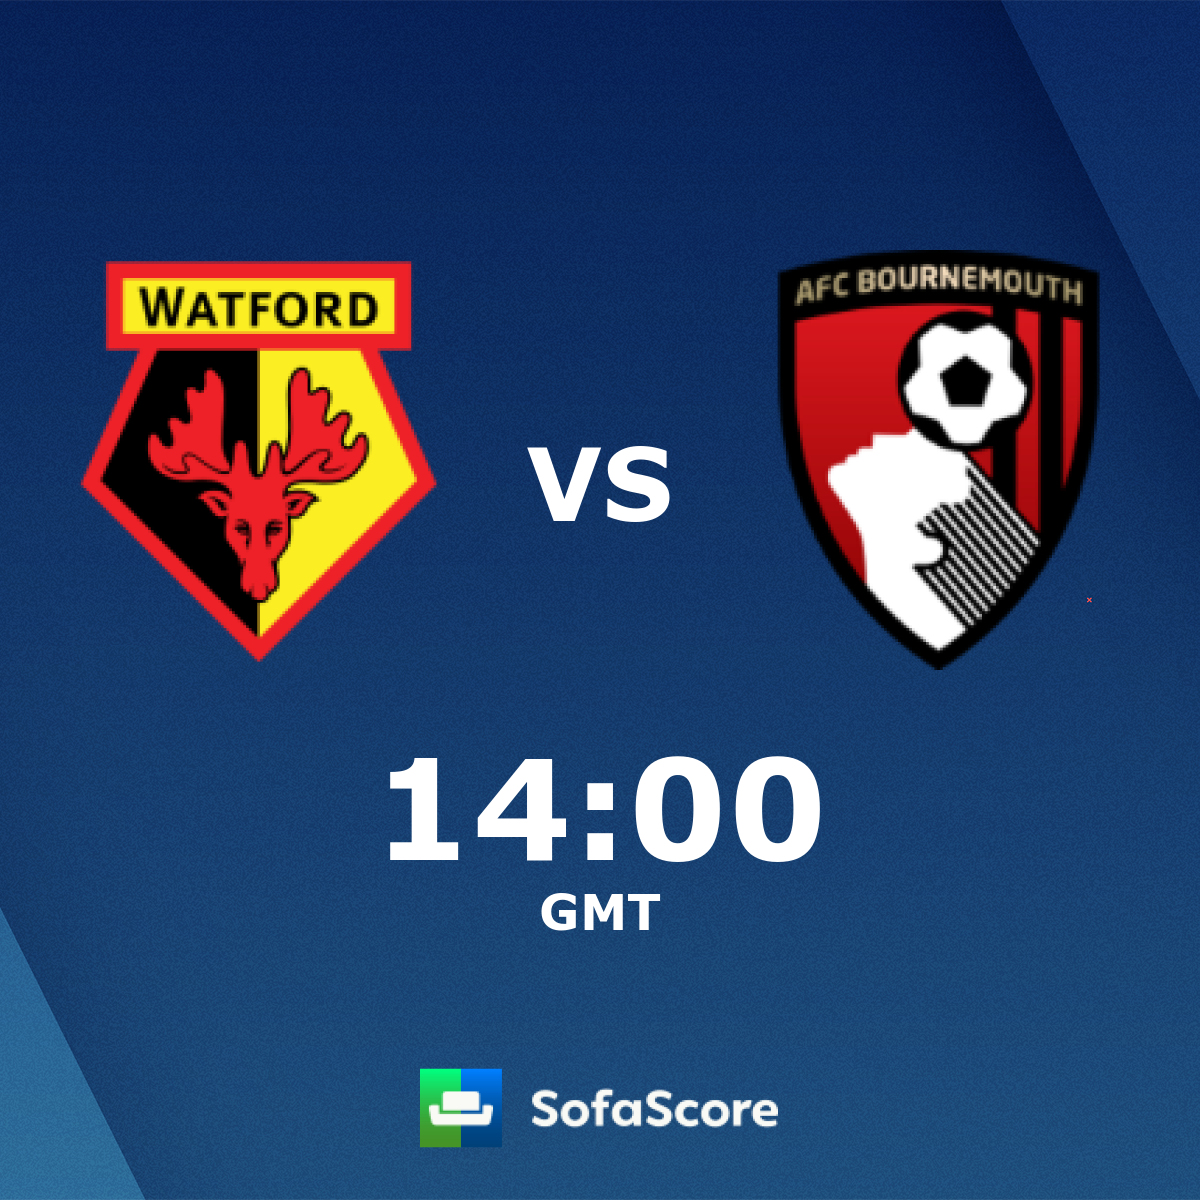 Watford Bournemouth live score, video stream and H2H results